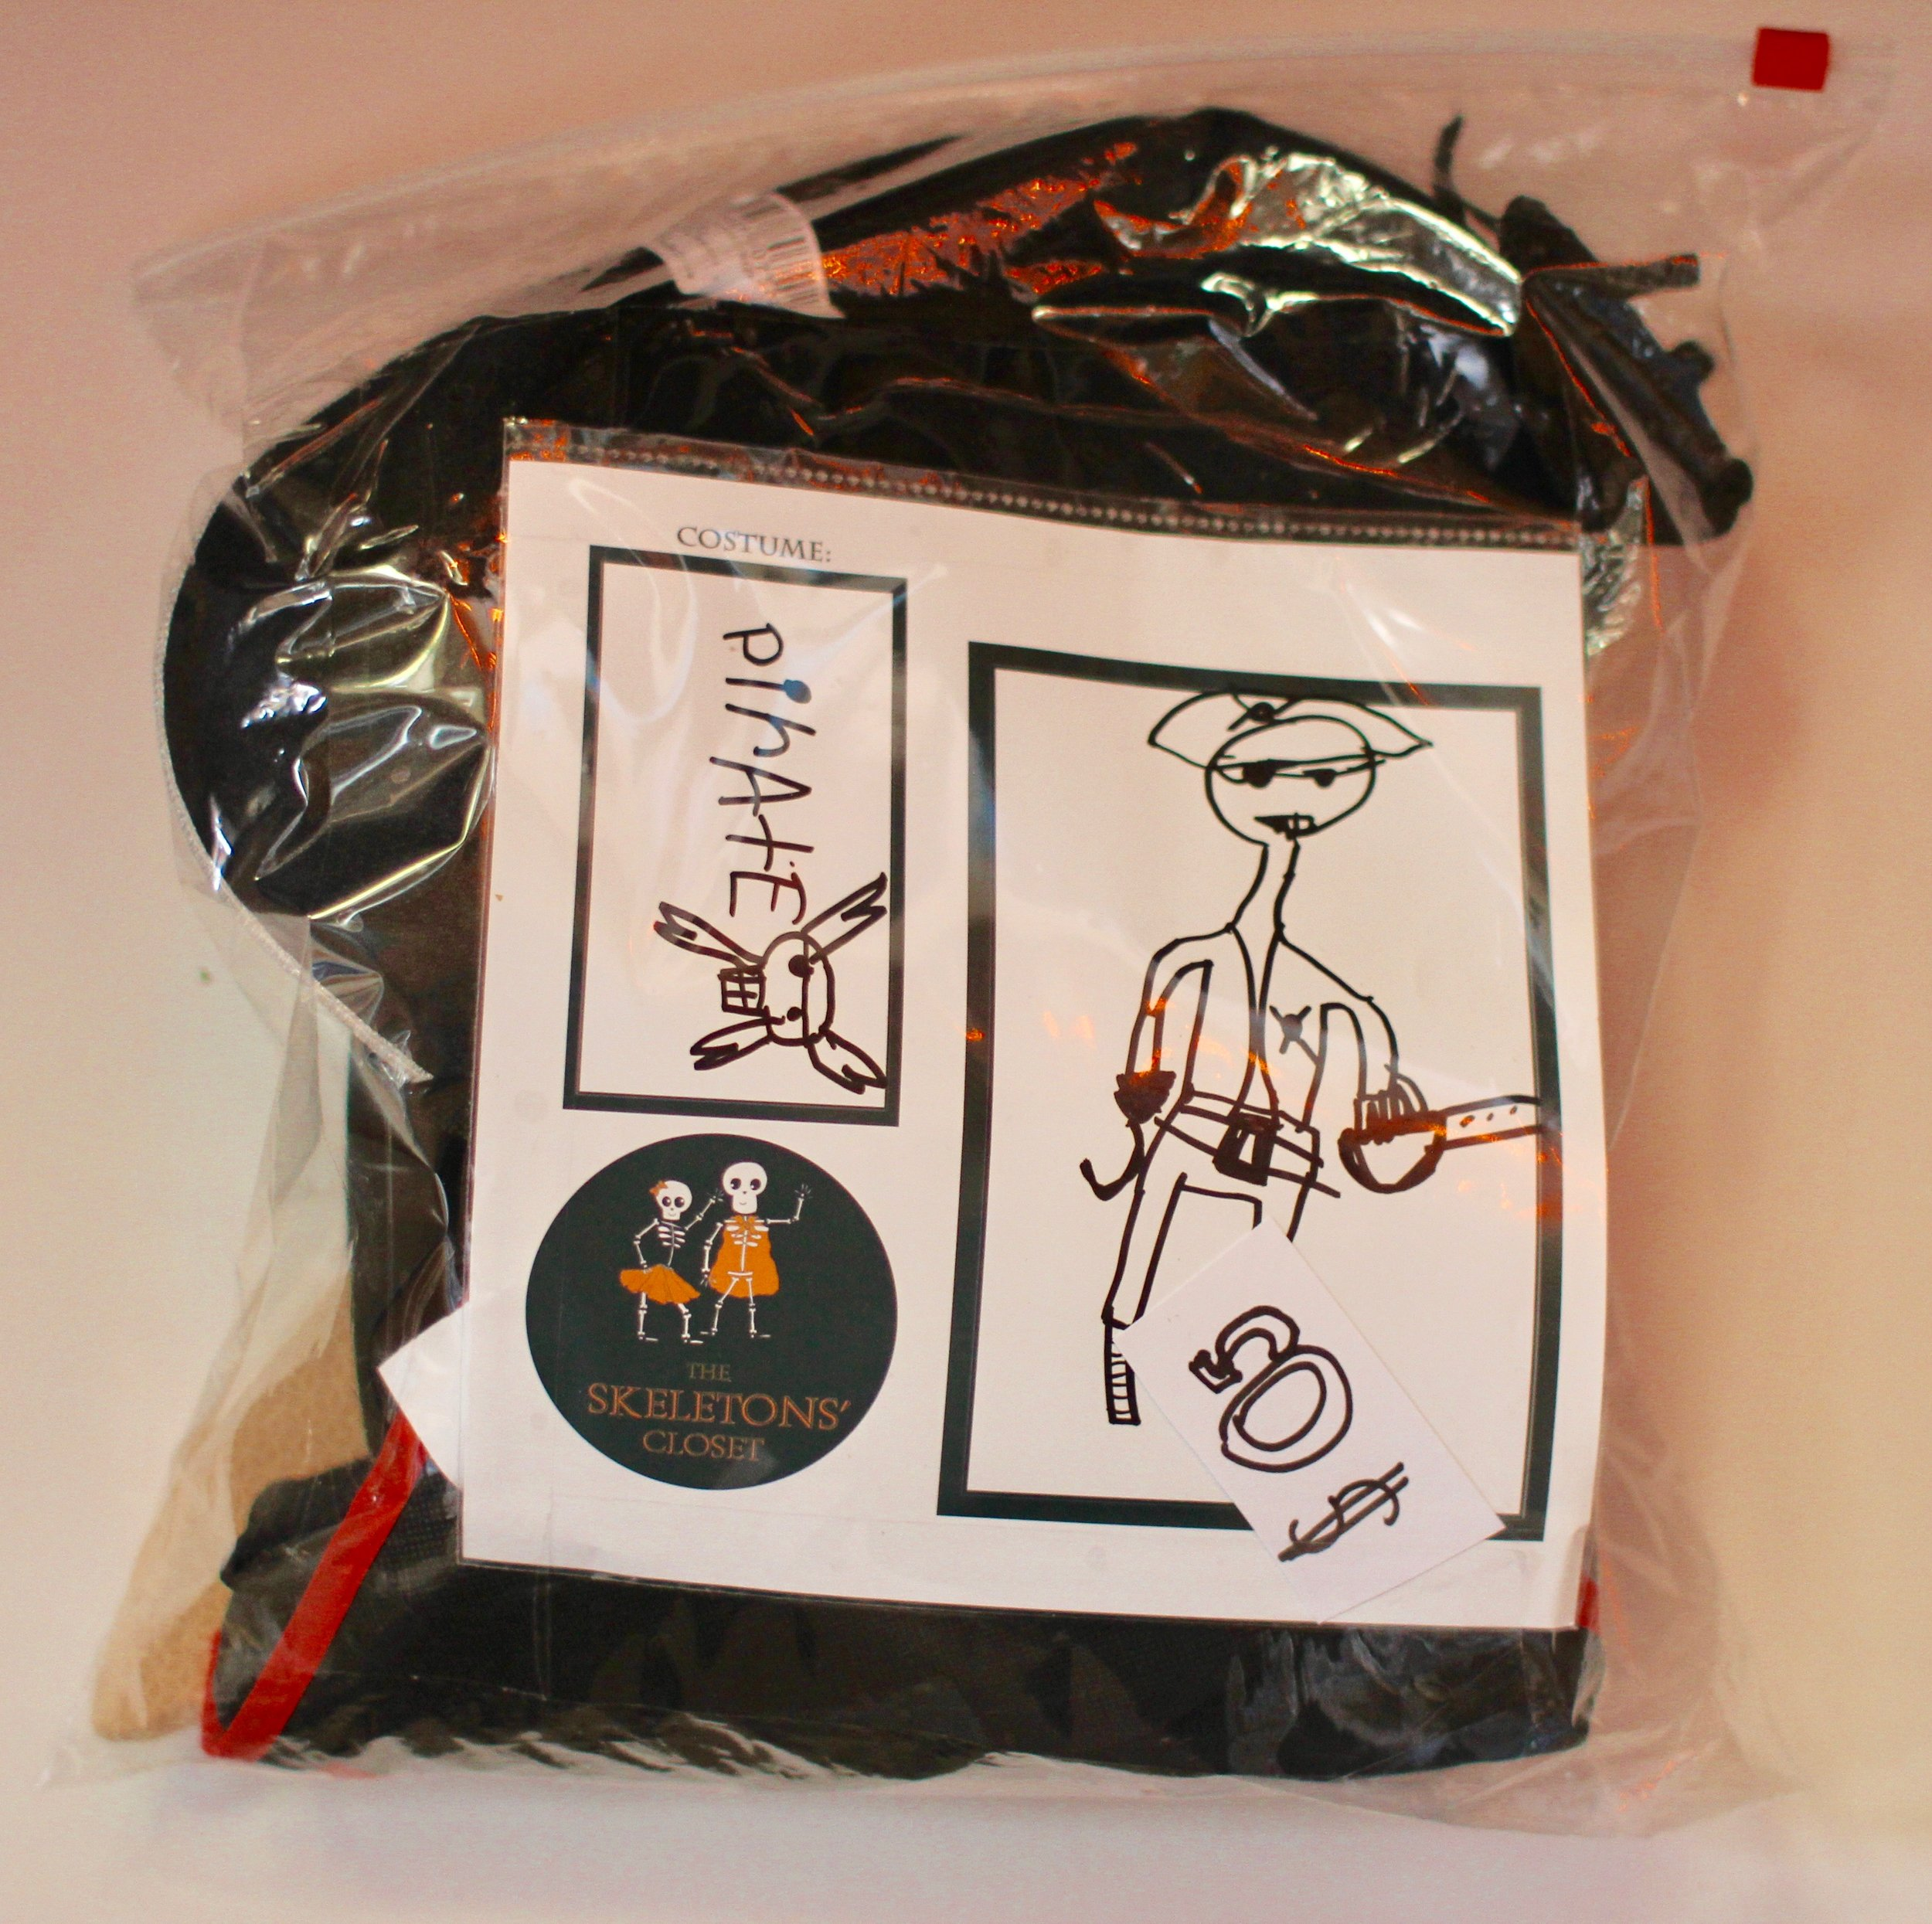 Pirates are a BIG deal around here.  Want to see what's inside this bag?